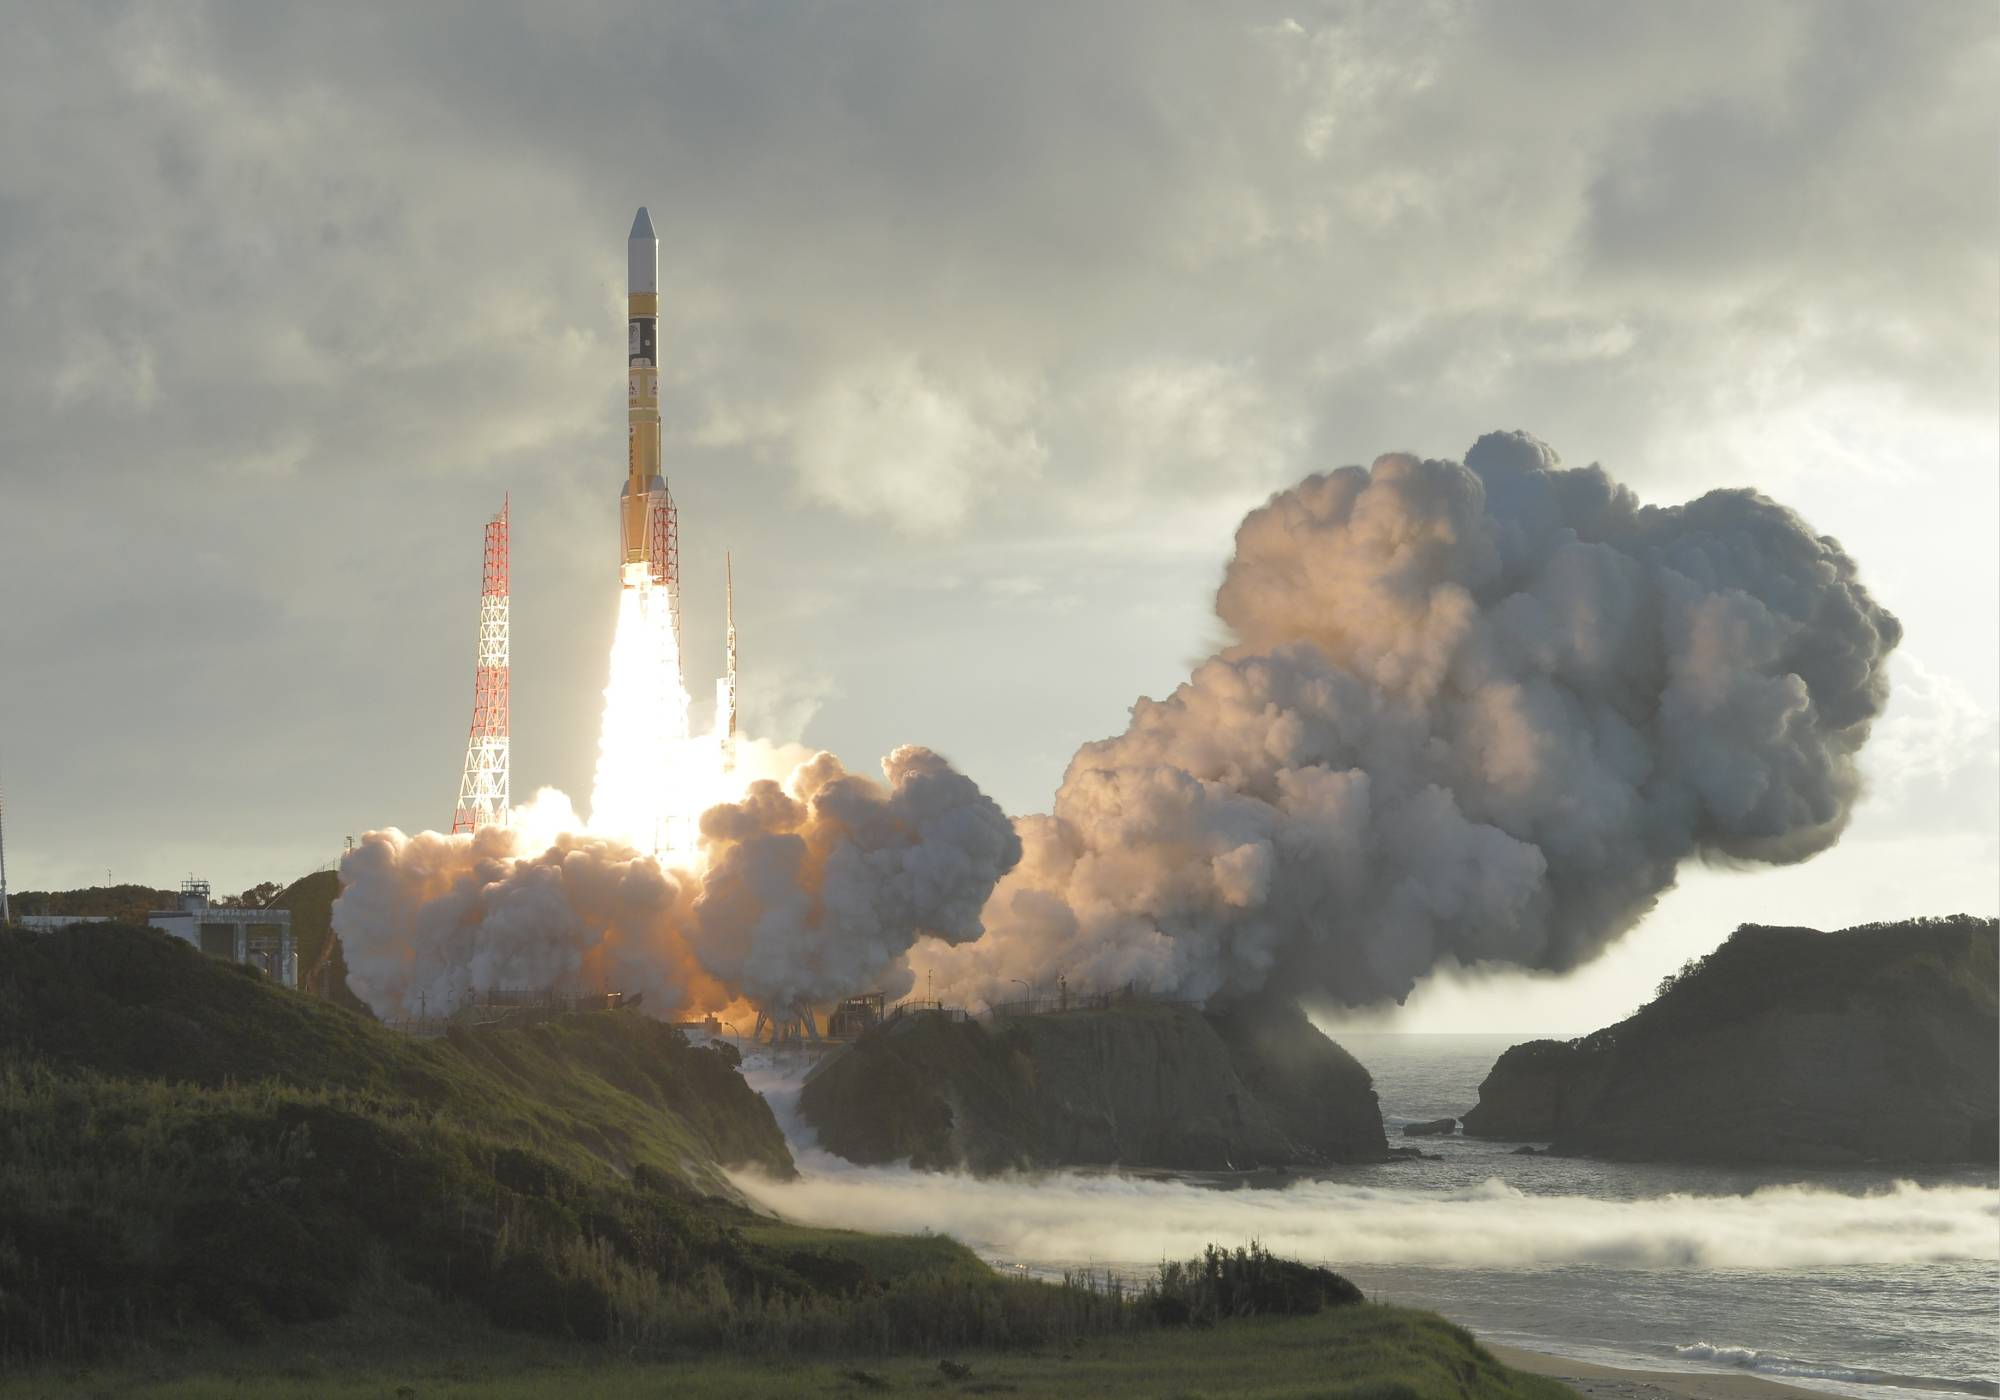 An H-2A rocket carrying a quasi-zenith satellite, Michibiki, lifts off from the Tanegashima Space Center in Kagoshima Prefecture in October 2017. Japan and the United States agreed that U.S. sensors will be mounted on two Michibiki satellites to be launched in fiscal 2023. | KYODO